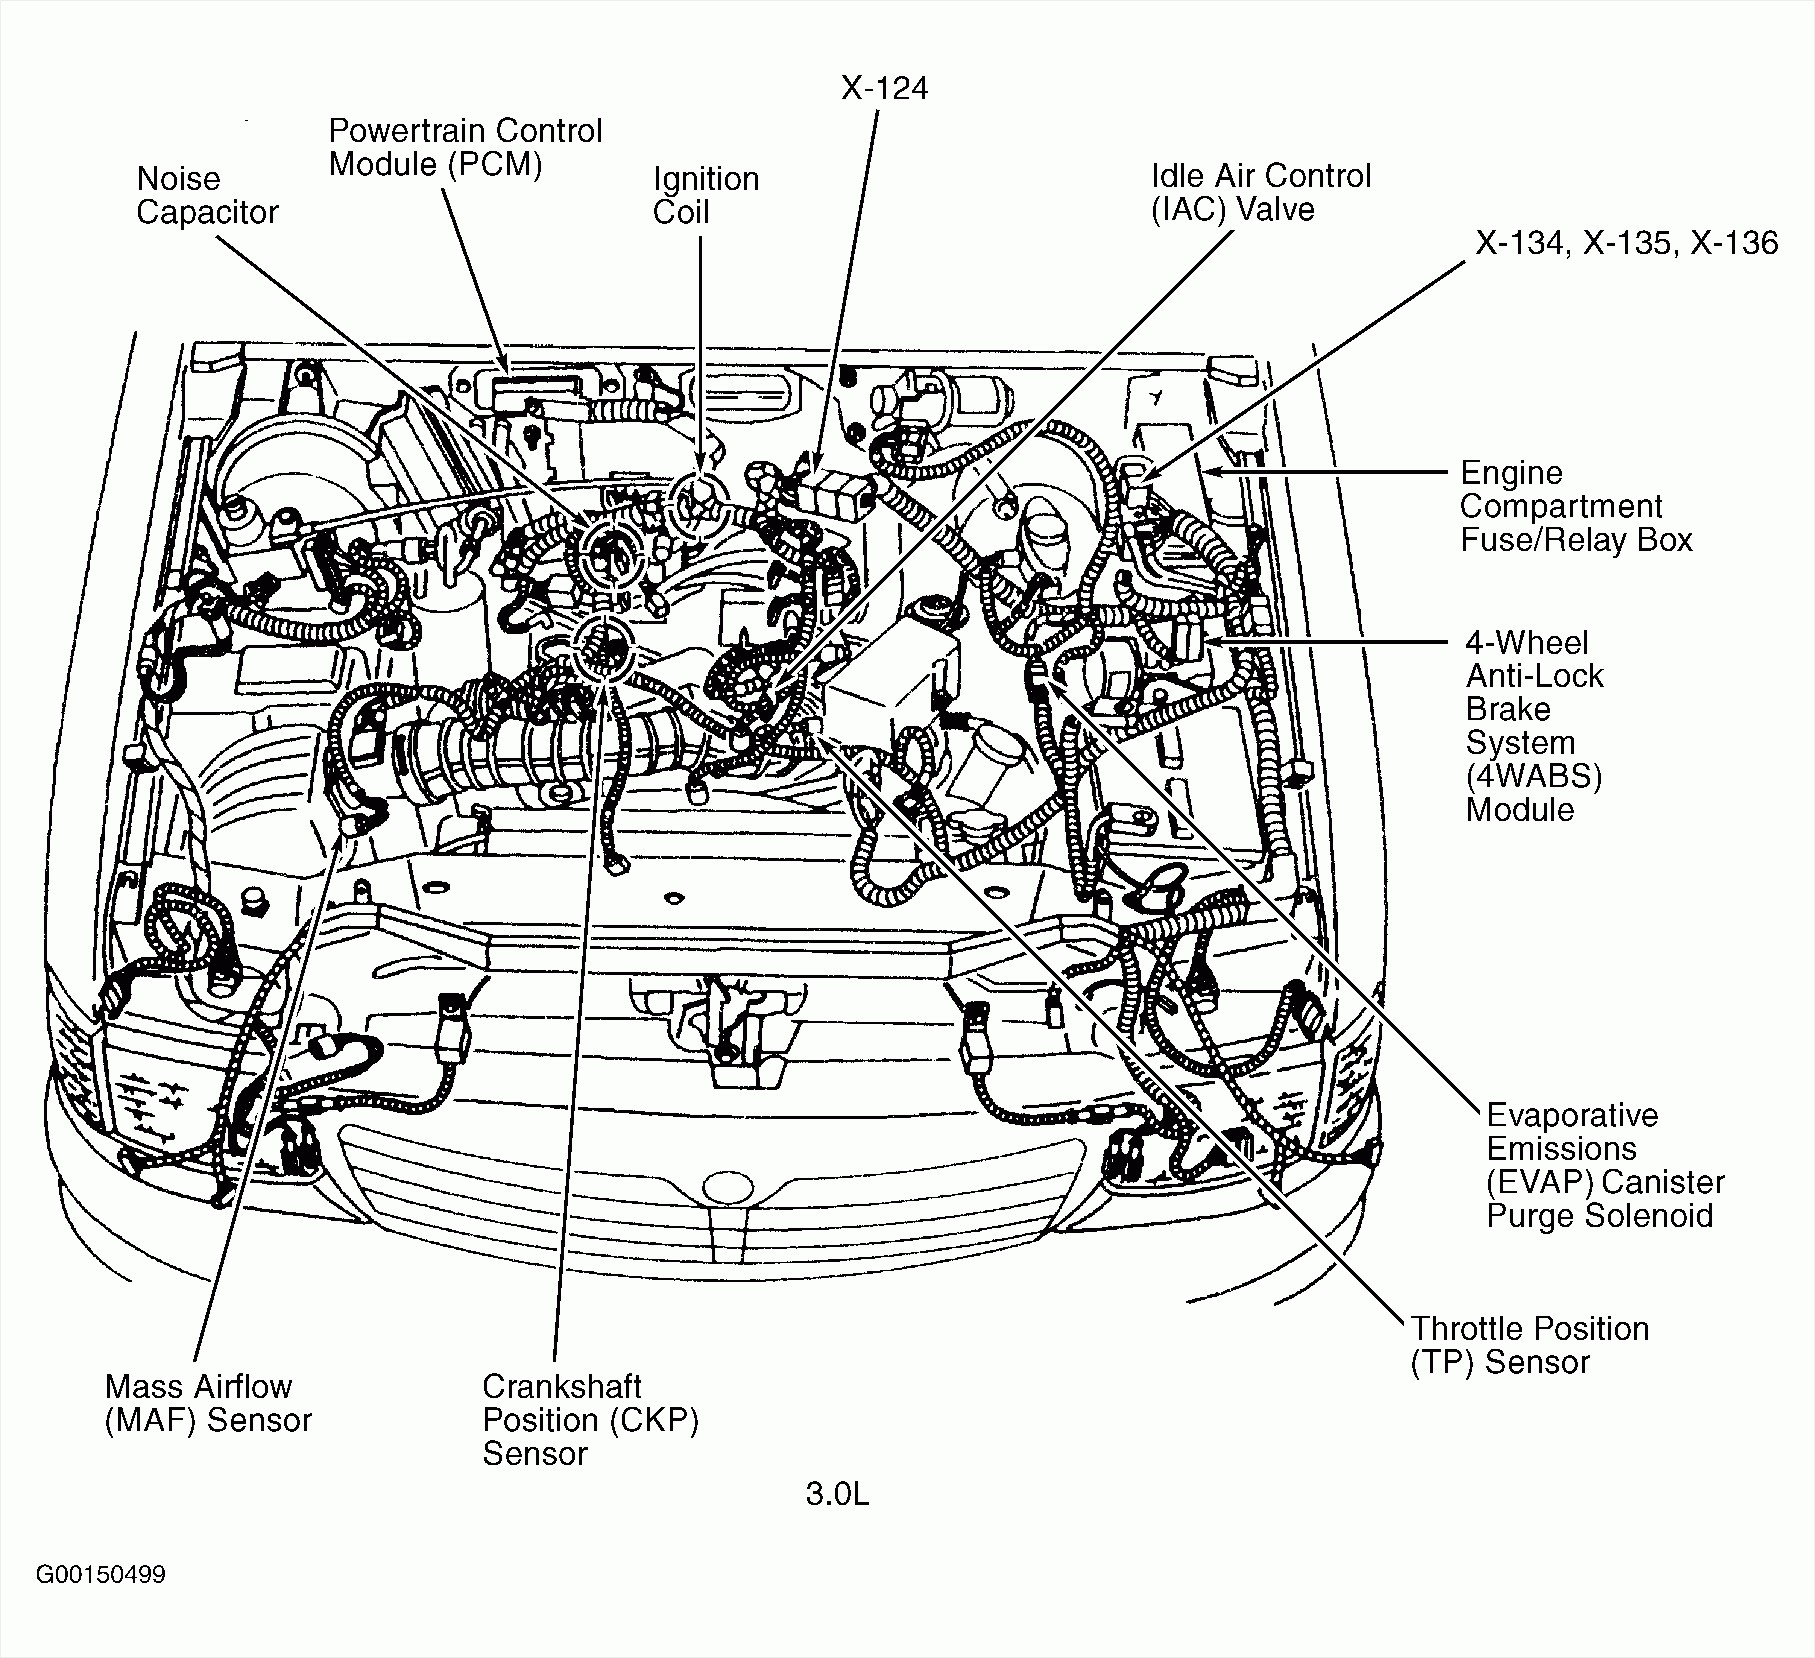 [DIAGRAM] 1984 Vw Scirocco Ignition Wiring Diagram FULL